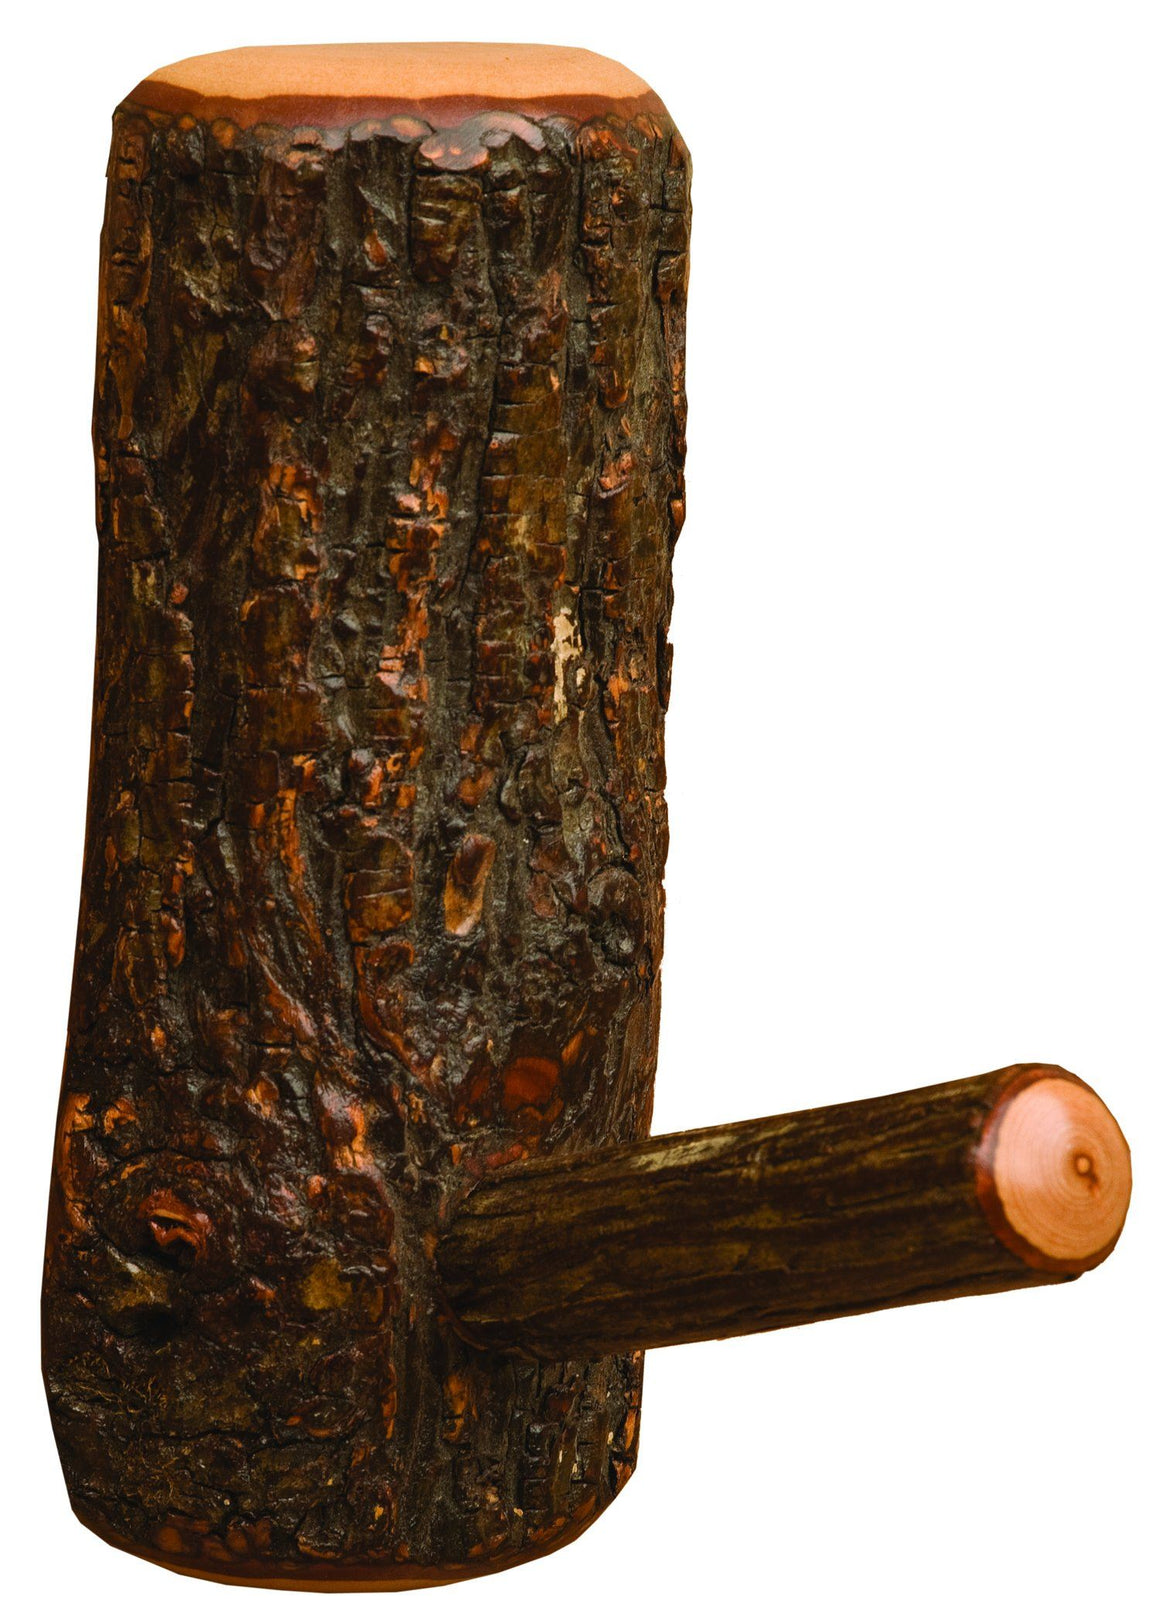 Real Hickory Log Coat Hook - Bark On One-of-a-Kind - Rustic Deco Incorporated